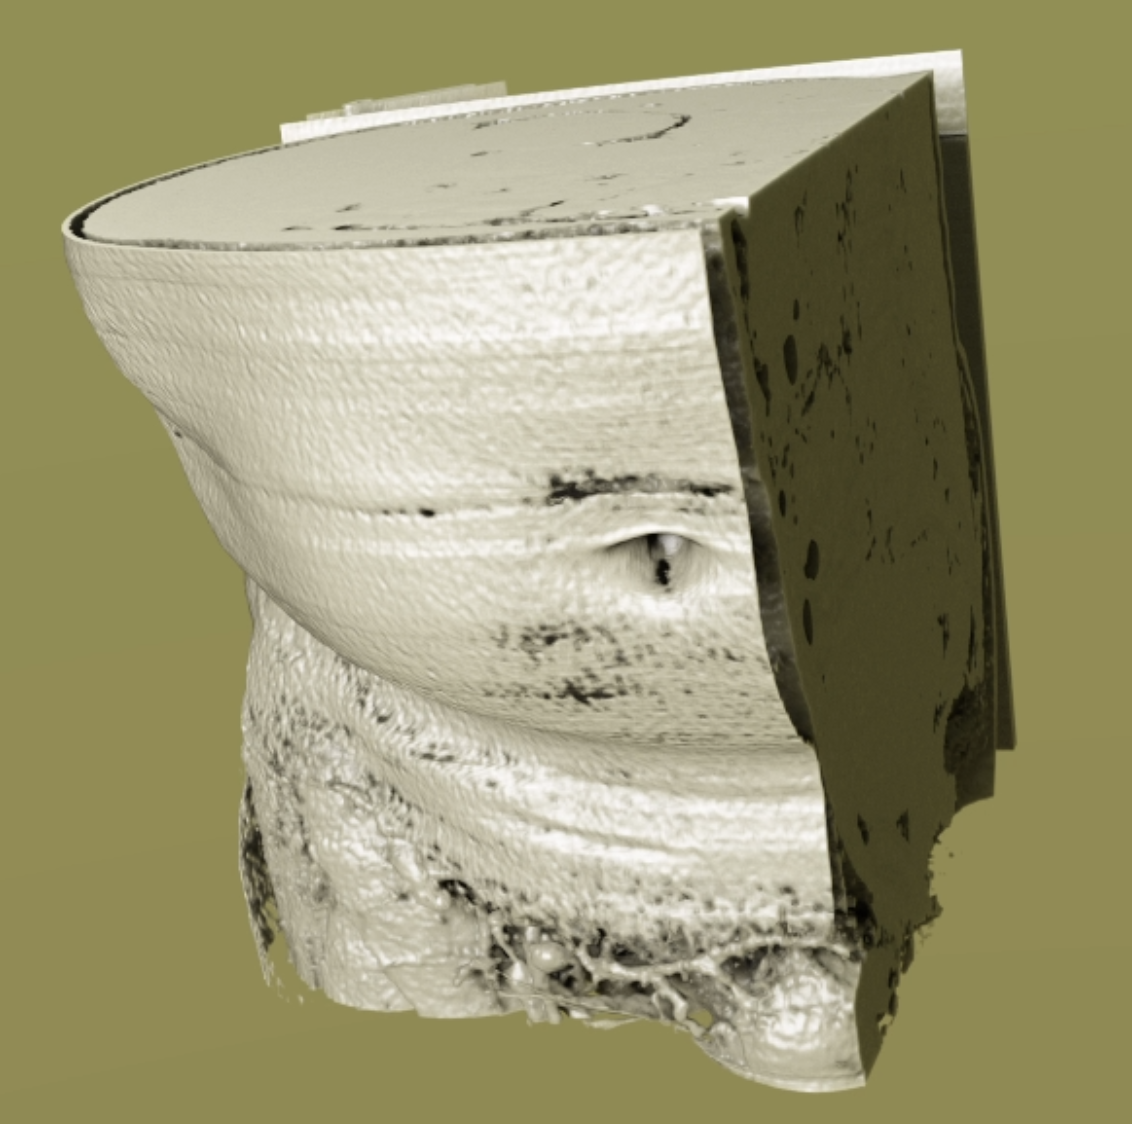 A visual example of a rendered 3D image of the abdomen using the 3D image processing pipeline with cropping using shared memory.